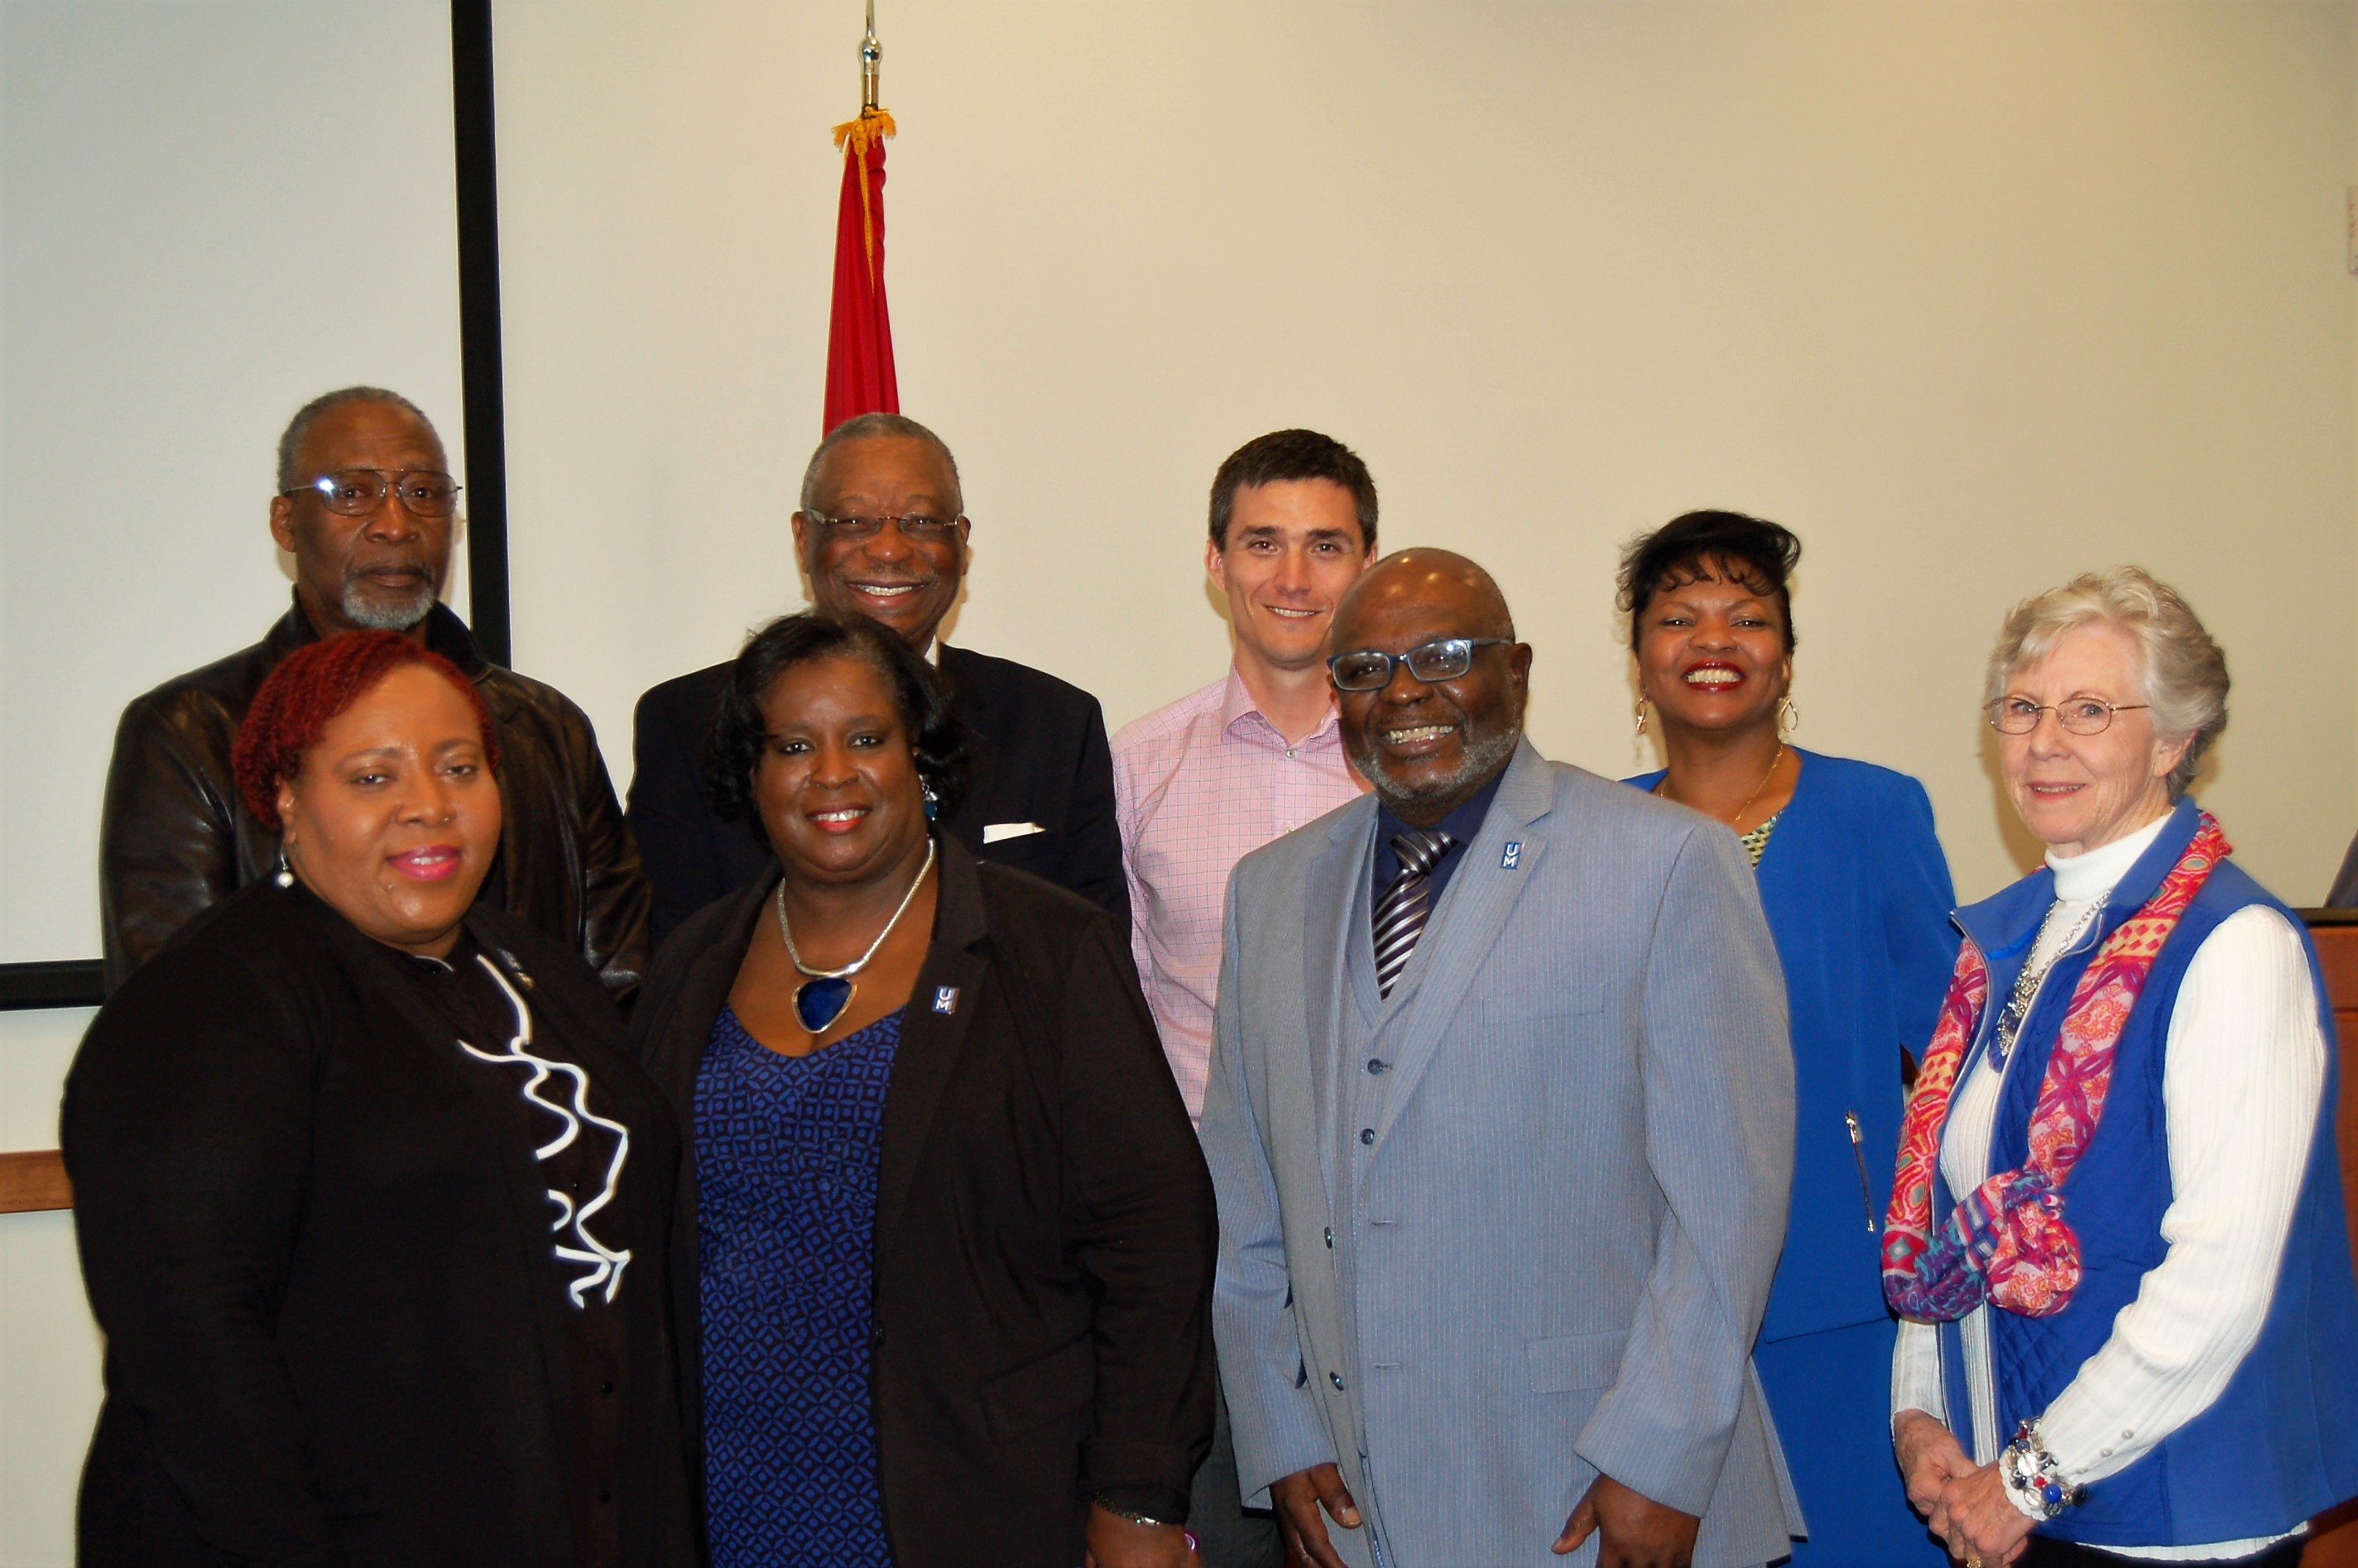 Dr. Green and past recipients.